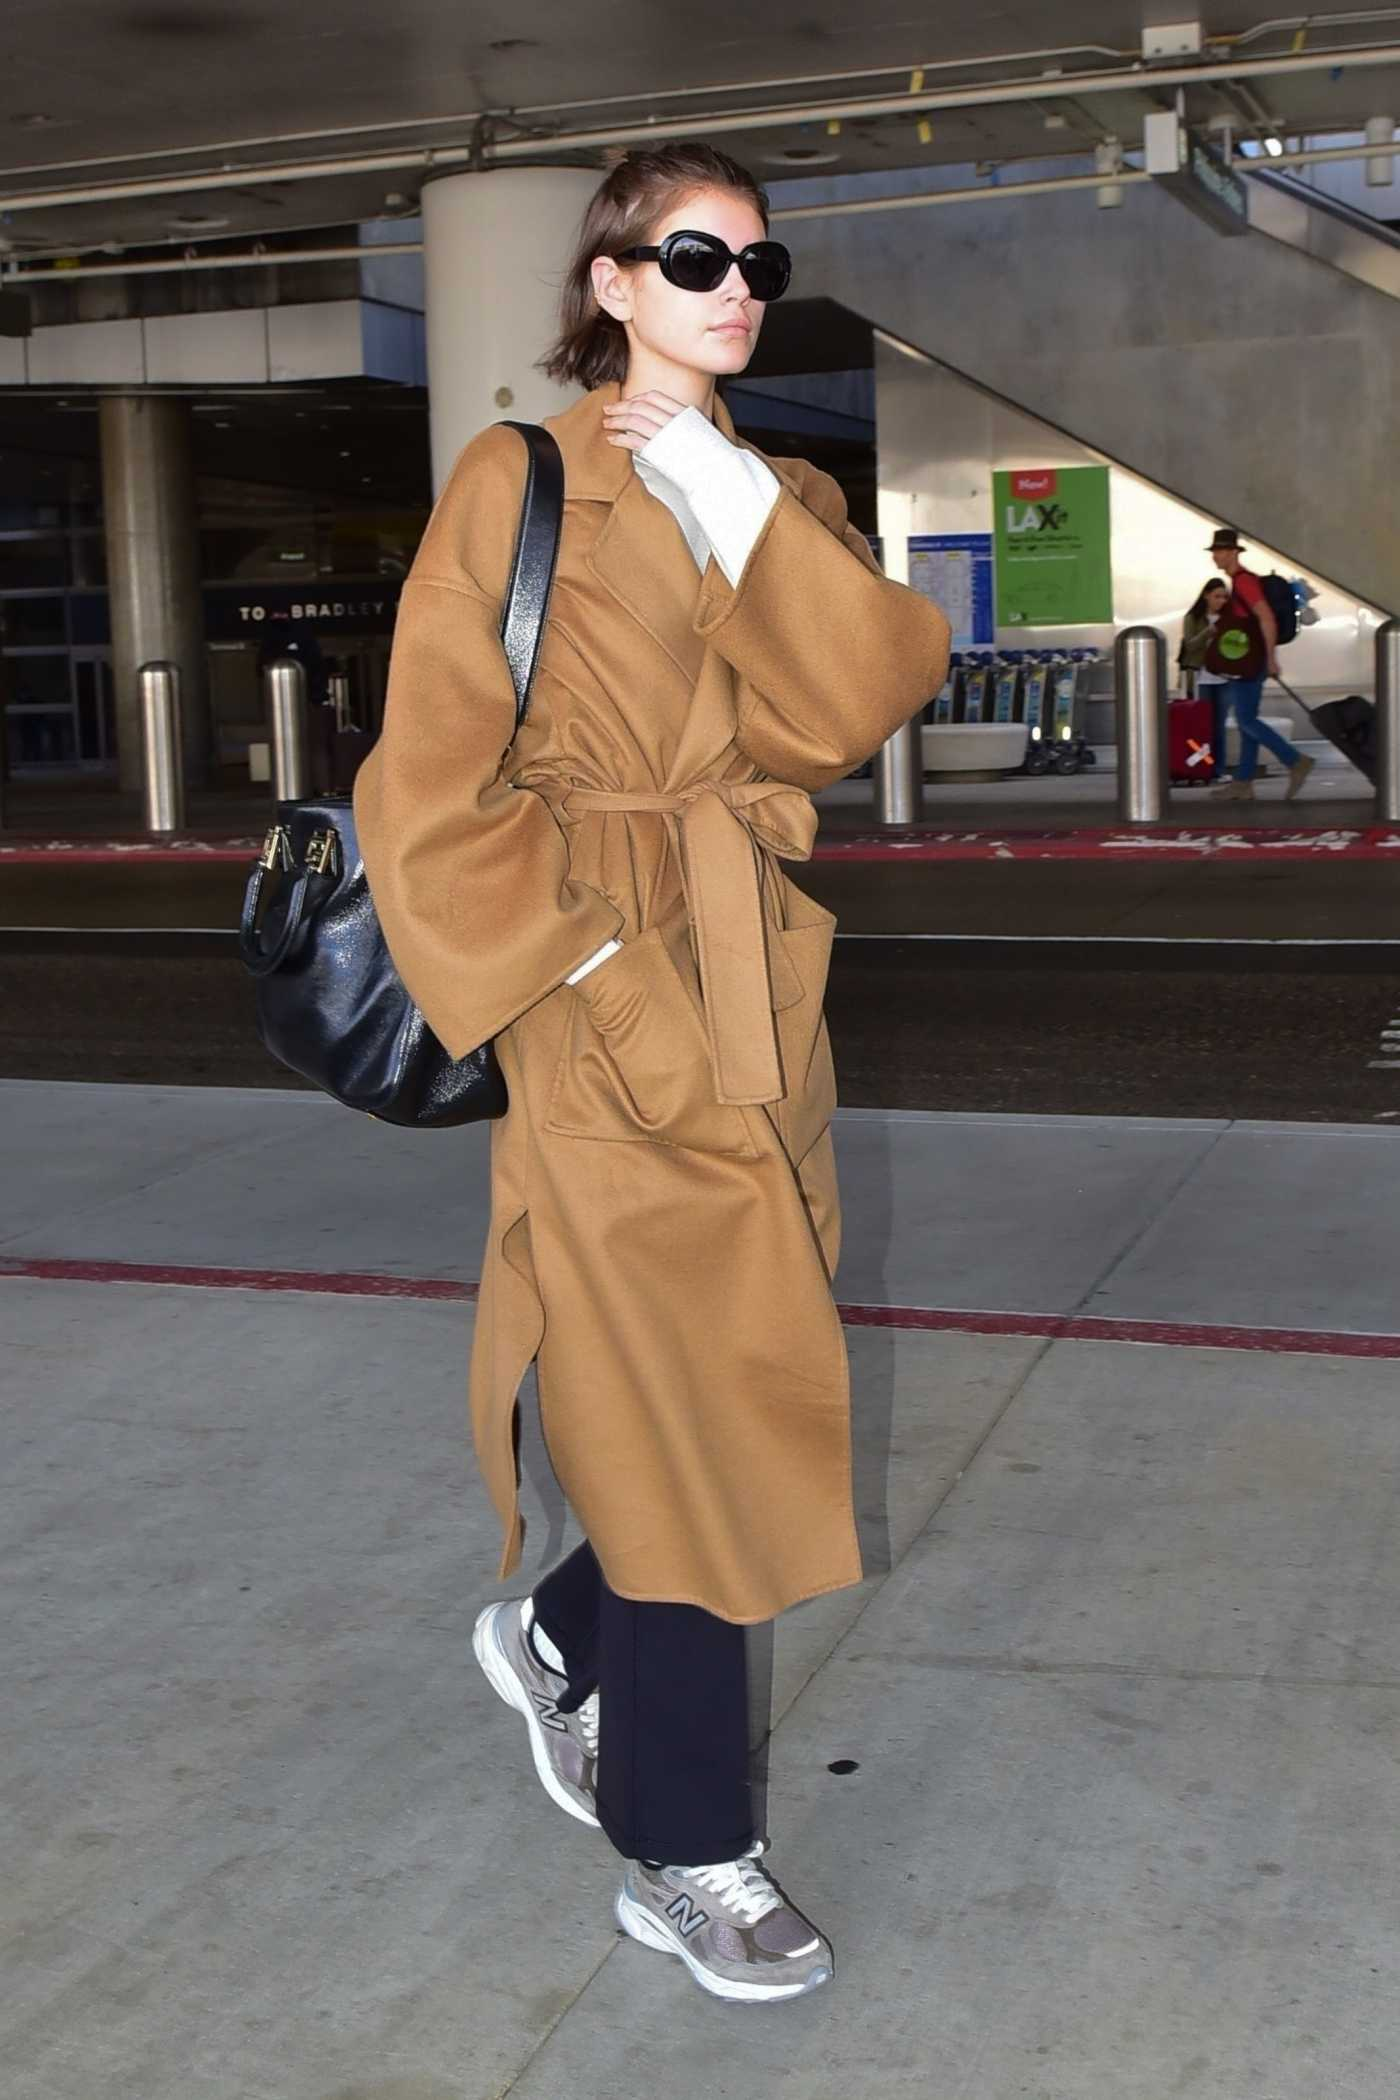 Kaia Gerber in a Tan Coat Arrives at LAX Airport in LA 03/05/2020